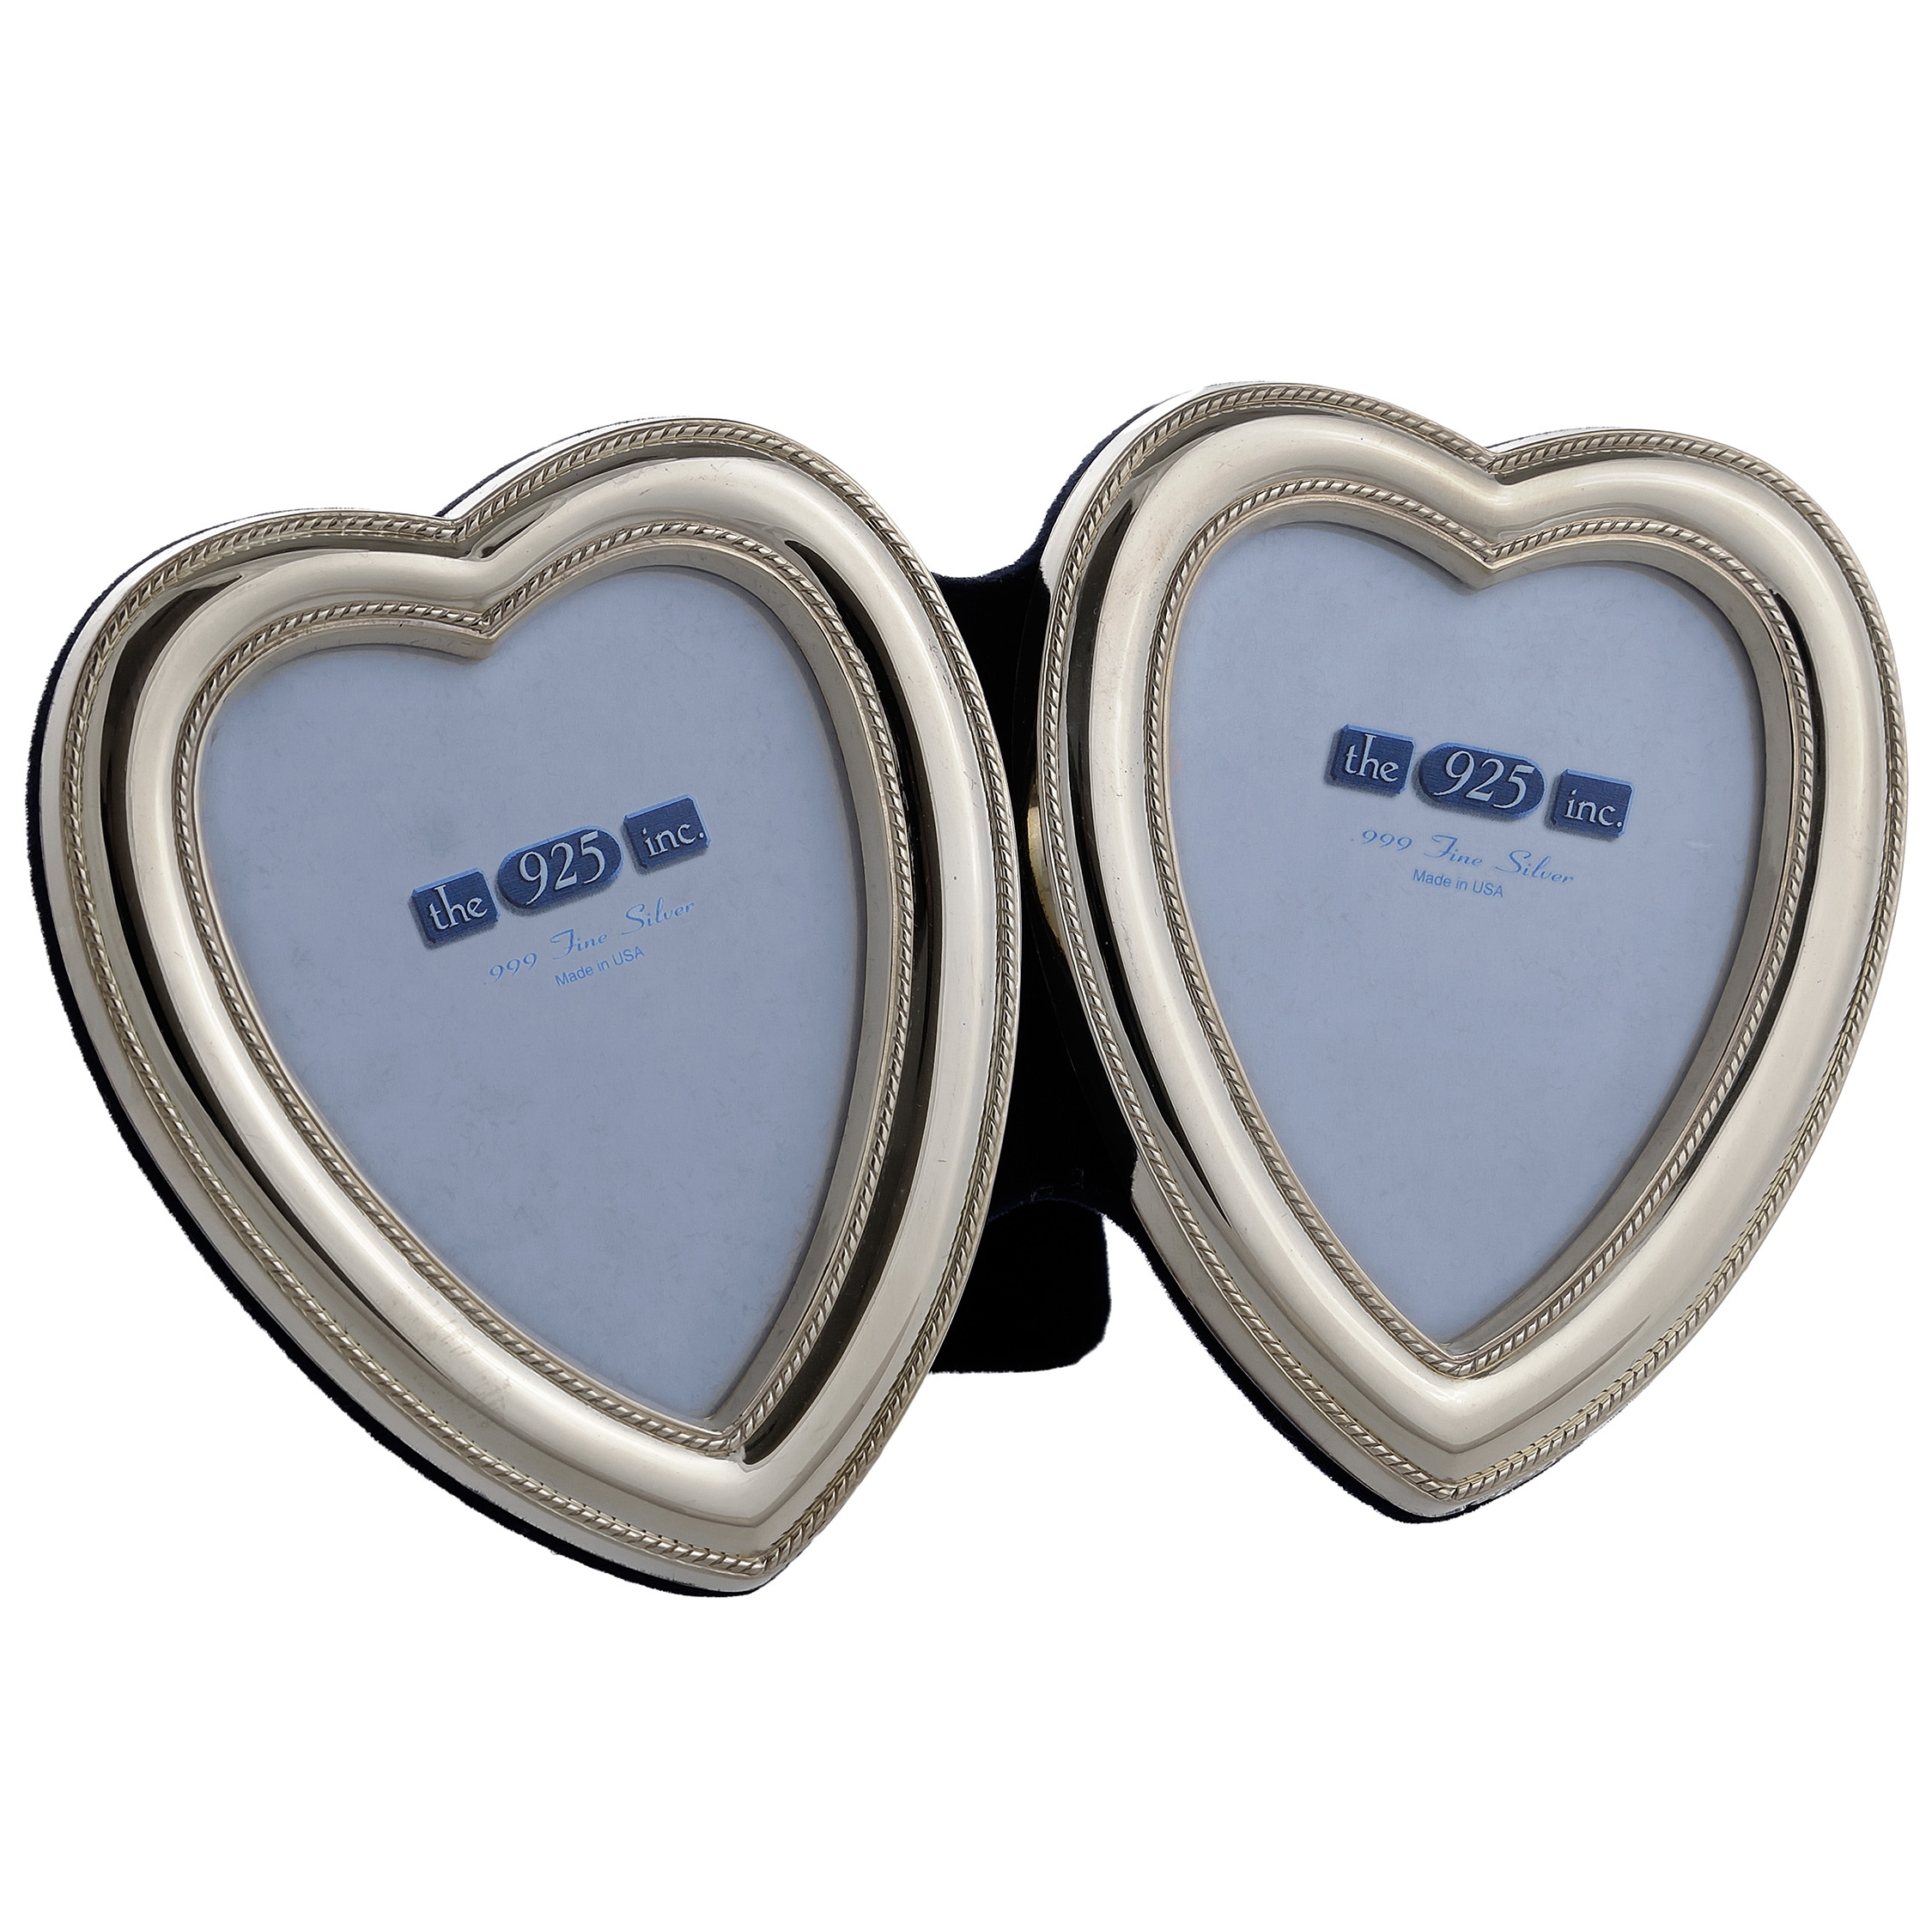 111-9D Beaded Double Silver Heart Frame Image